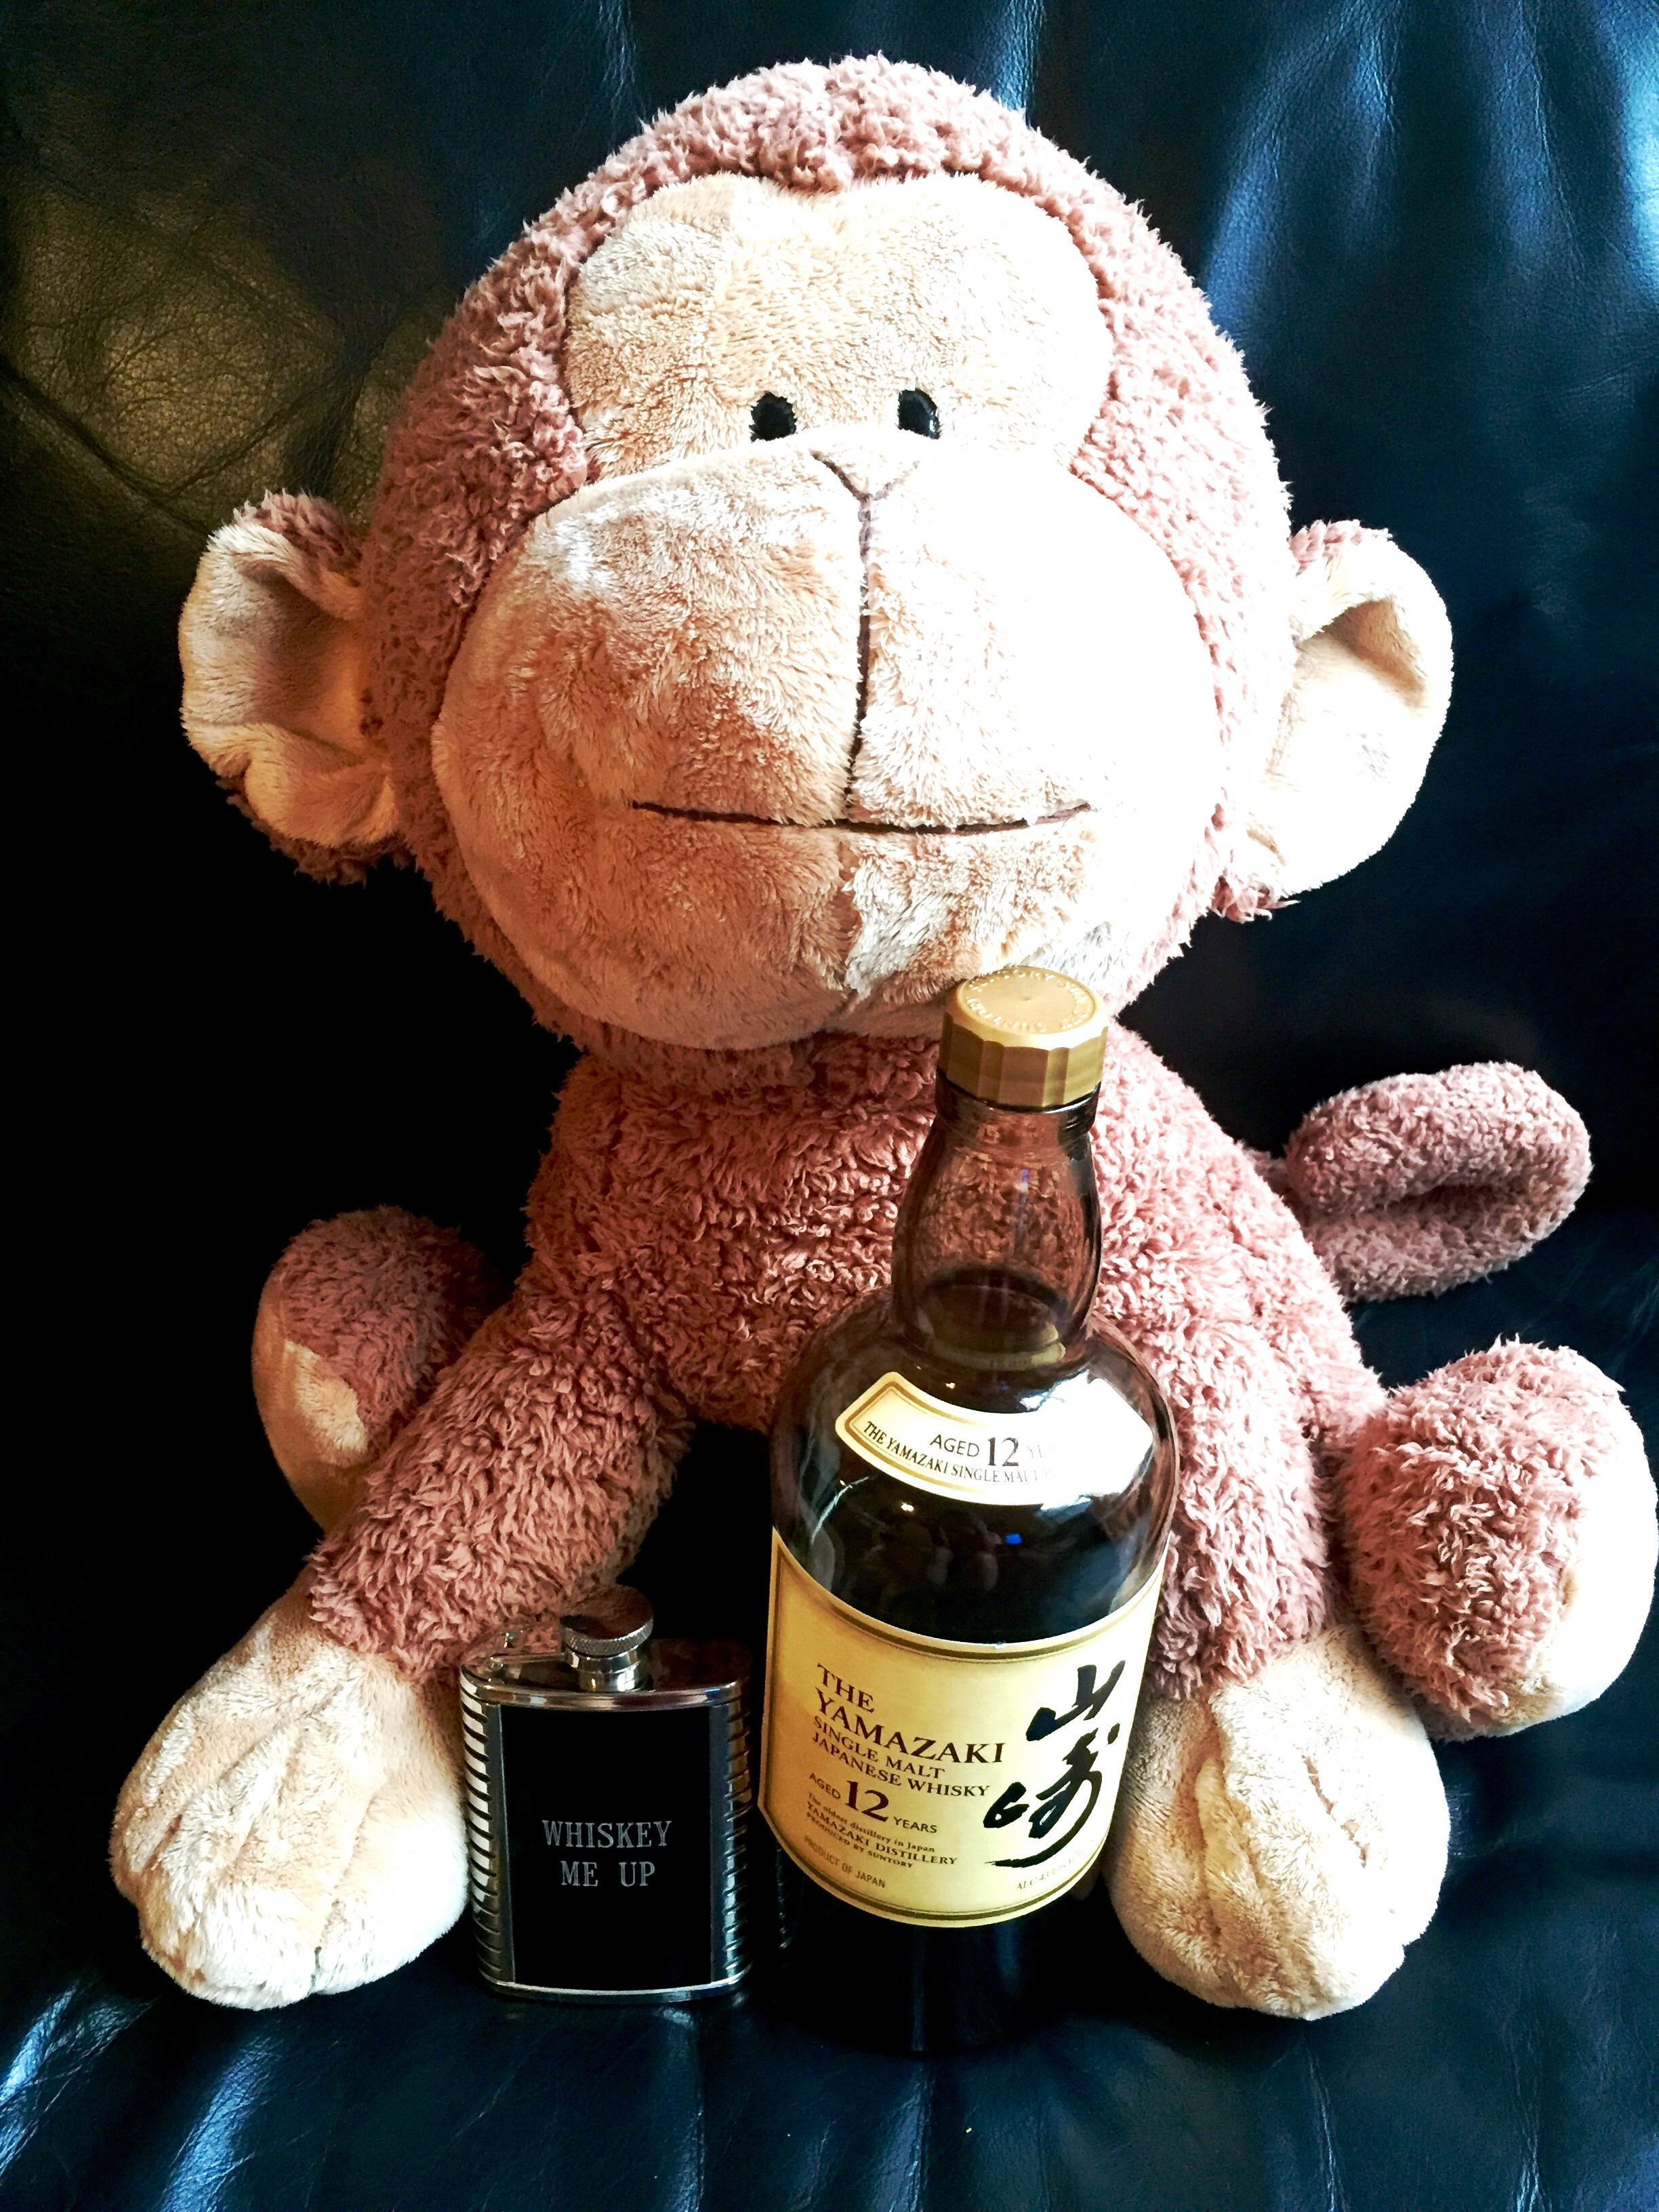 Lunar New Year 2016 - Year of the Monkey with Yamazaki 12